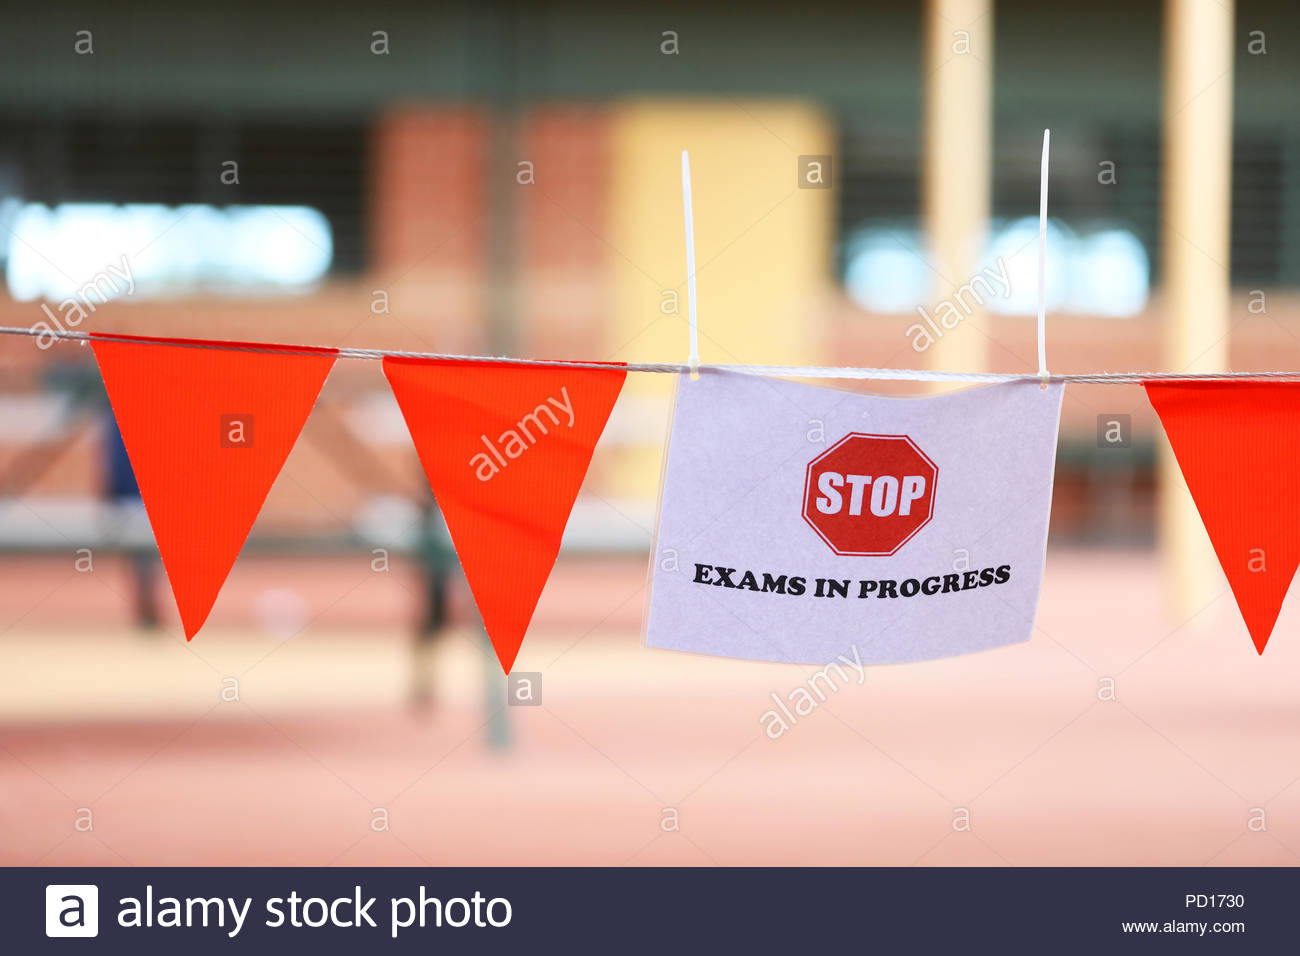 stop exam sign outside a class room. exams time at school. major end of year school university entrance assessment examinations. senior secondary high - Stock Image